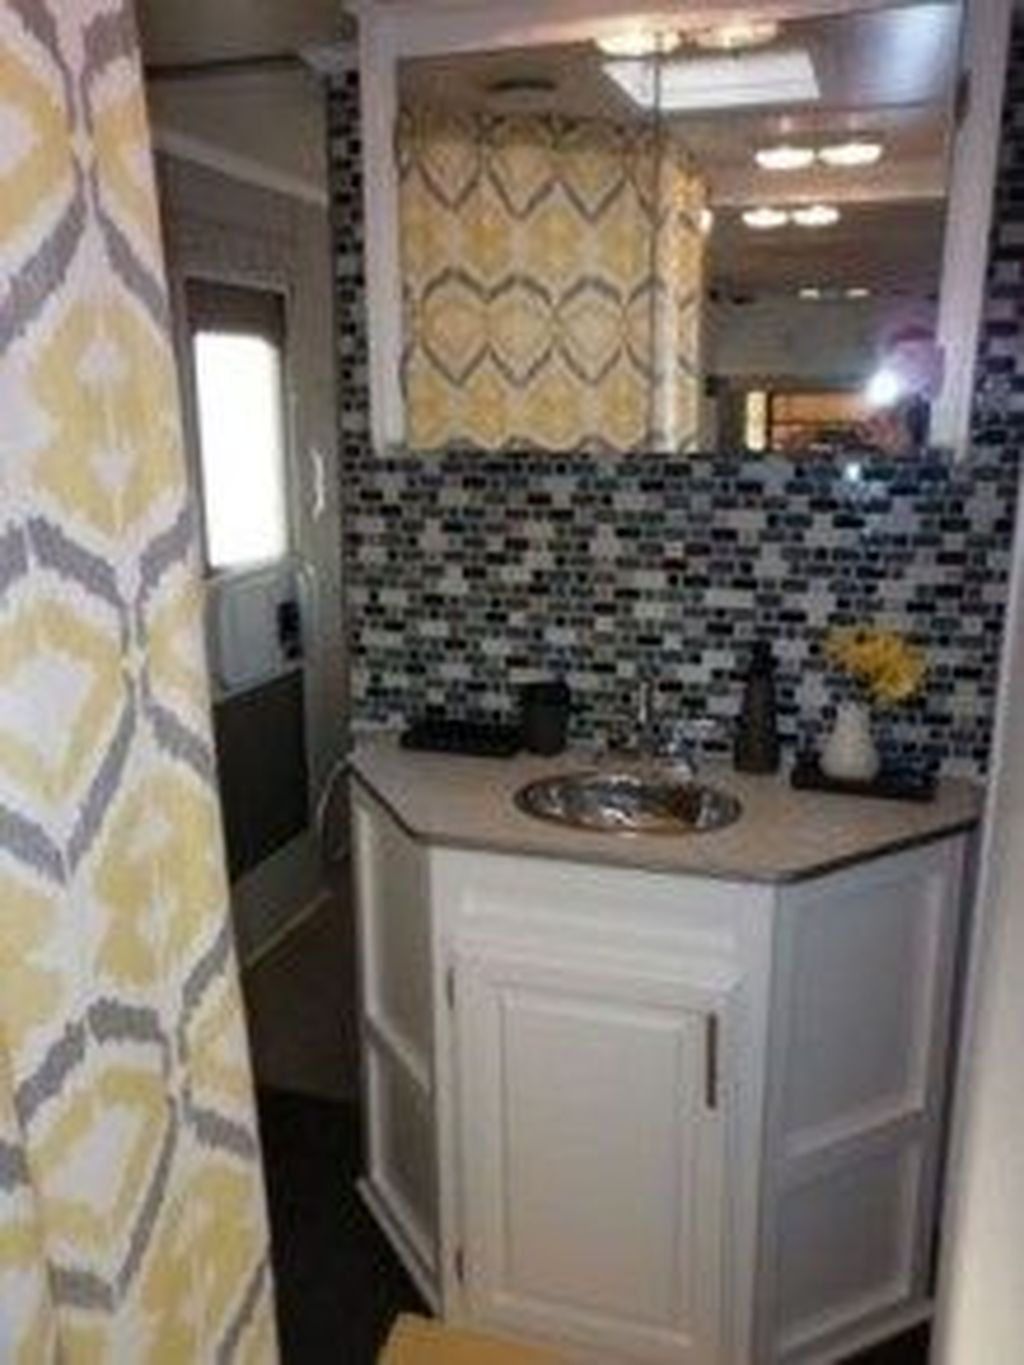 Fascinating Rv Remodel Ideas For Bathroom On A Budget46